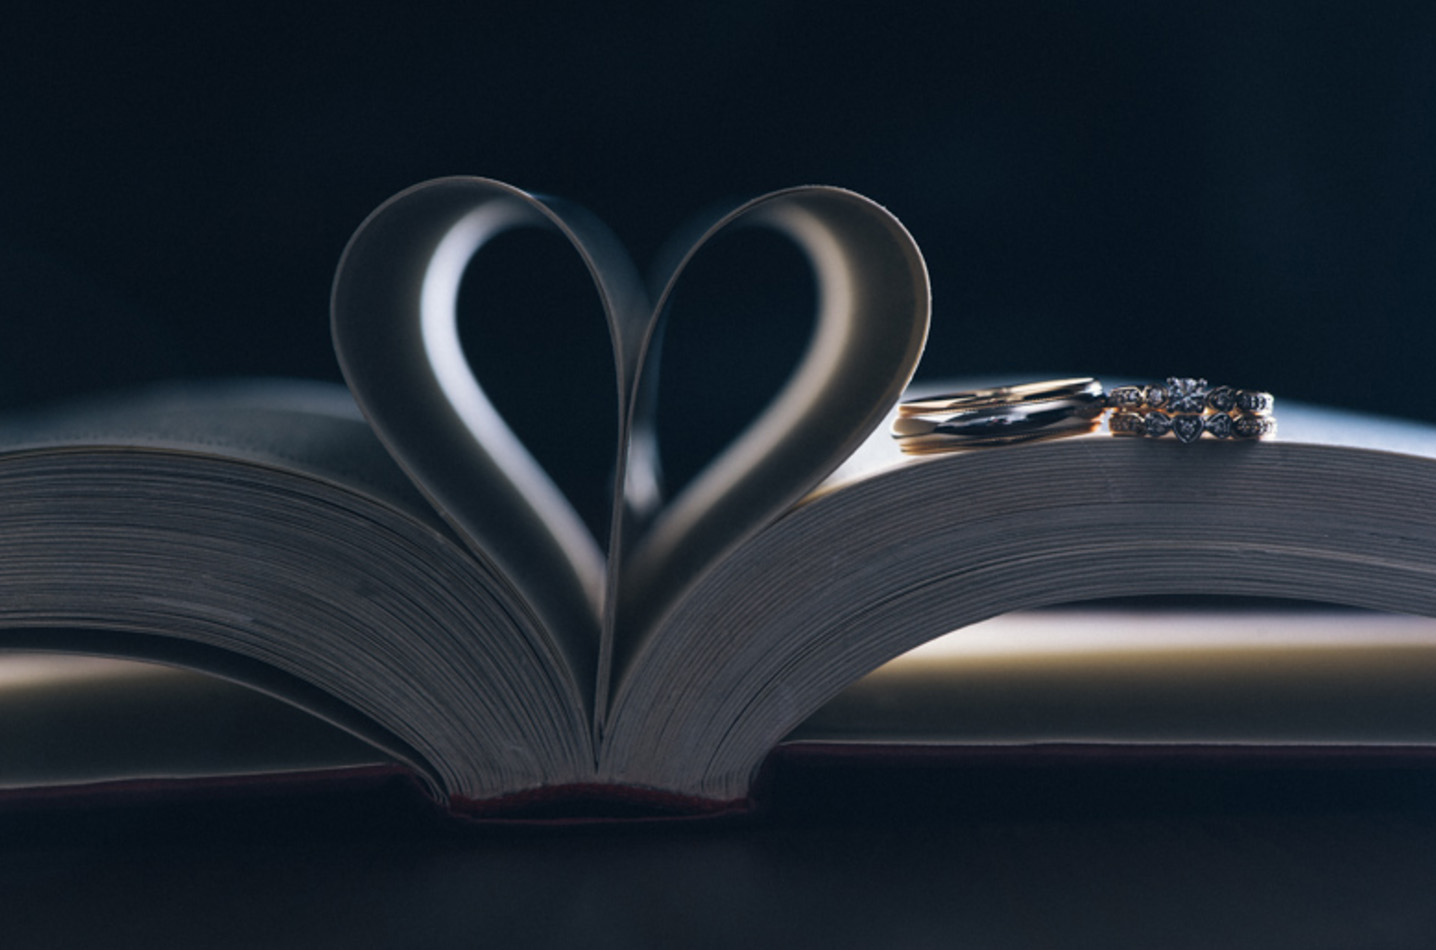 Award-winning wedding photo of wedding rings on a book